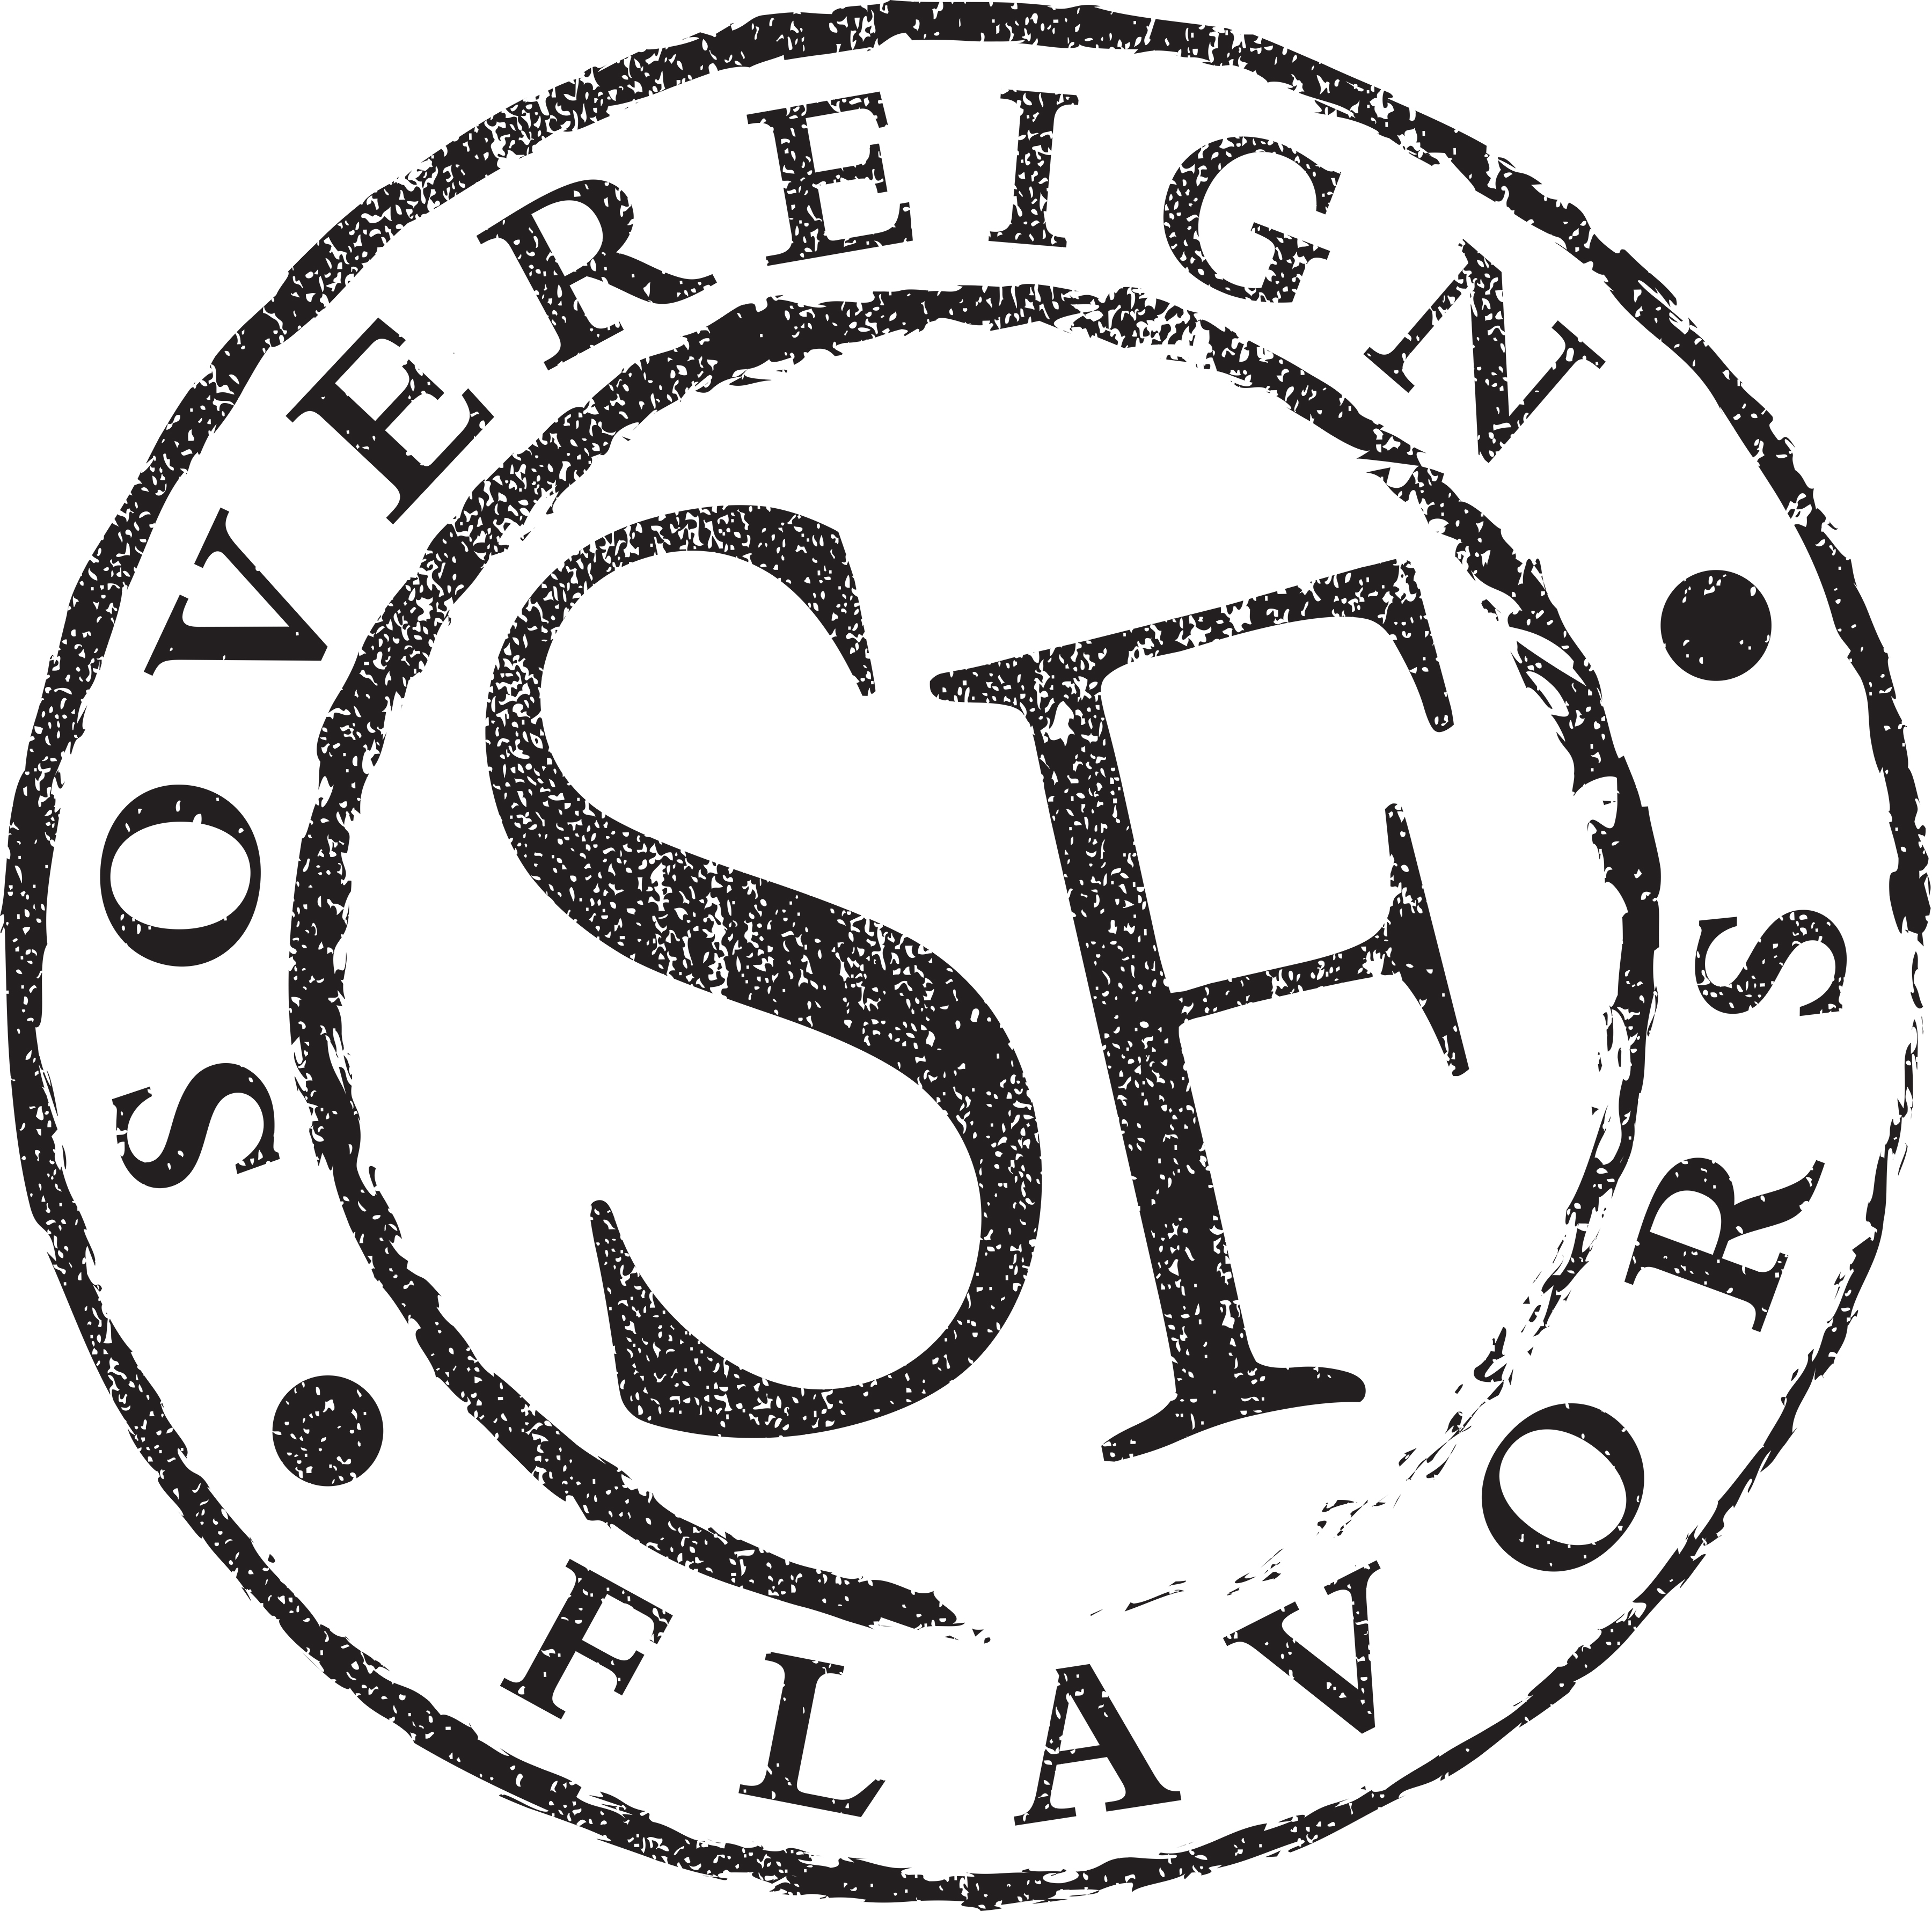 Sovereign Flavors